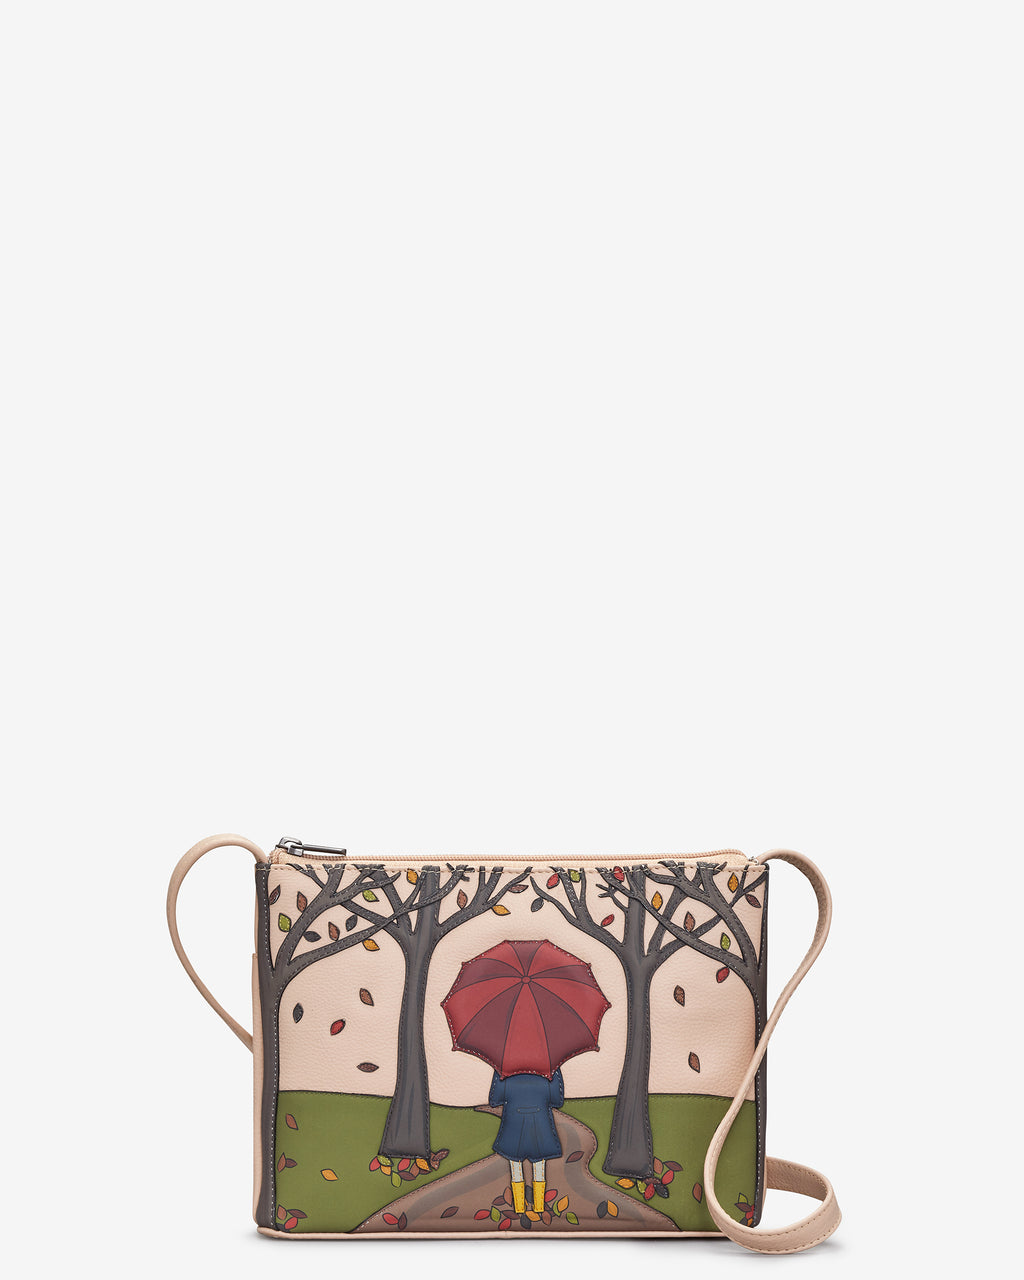 Autumn Girl Leather Cross Body Bag